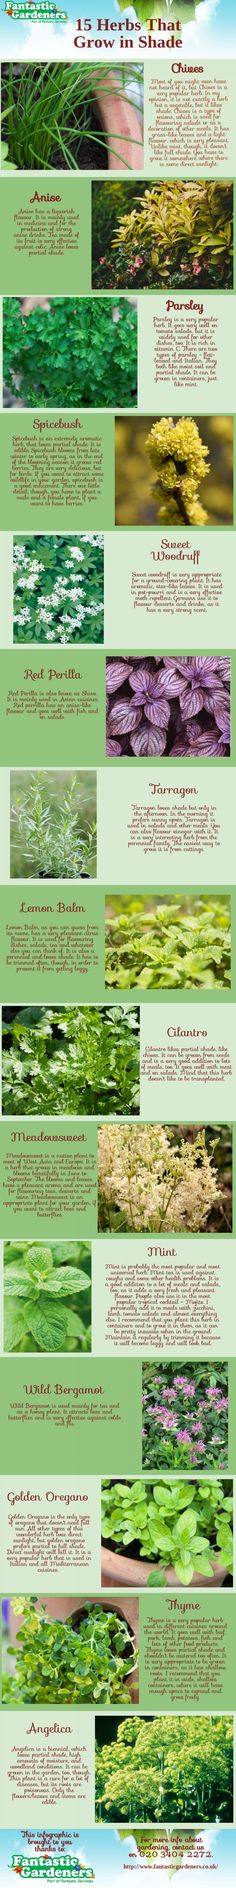 Everything Plants and Flowers: 15 Herbs That Grow in Shade